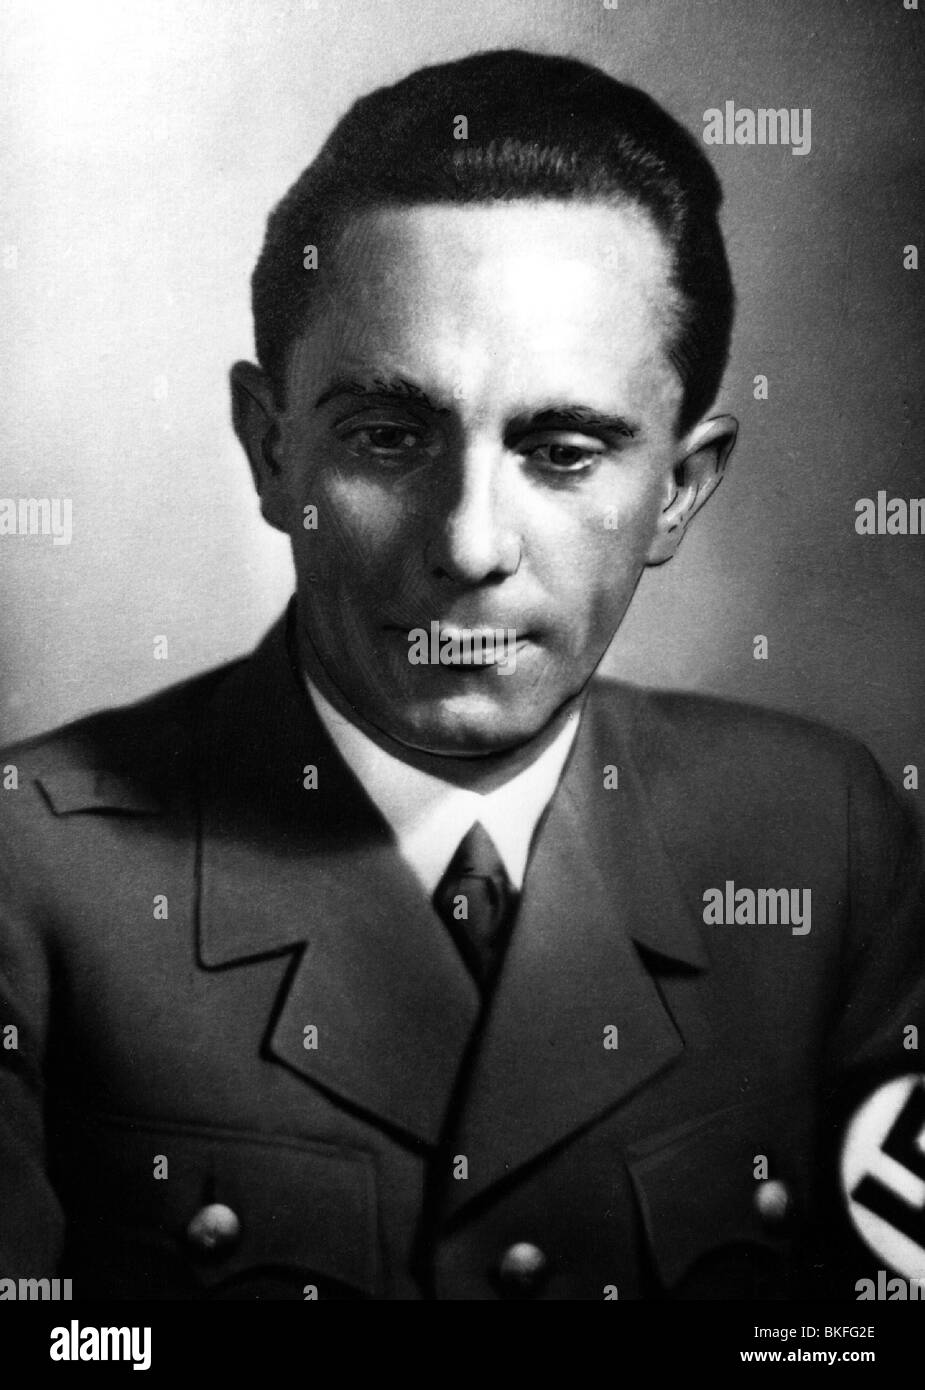 a biography of paul joseph goebbels the propaganda minister in nazi germany Name at birth: paul joseph goebbels joseph goebbels was nazi germany's  minister of propaganda and a member of adolf hitler's inner circle during world.